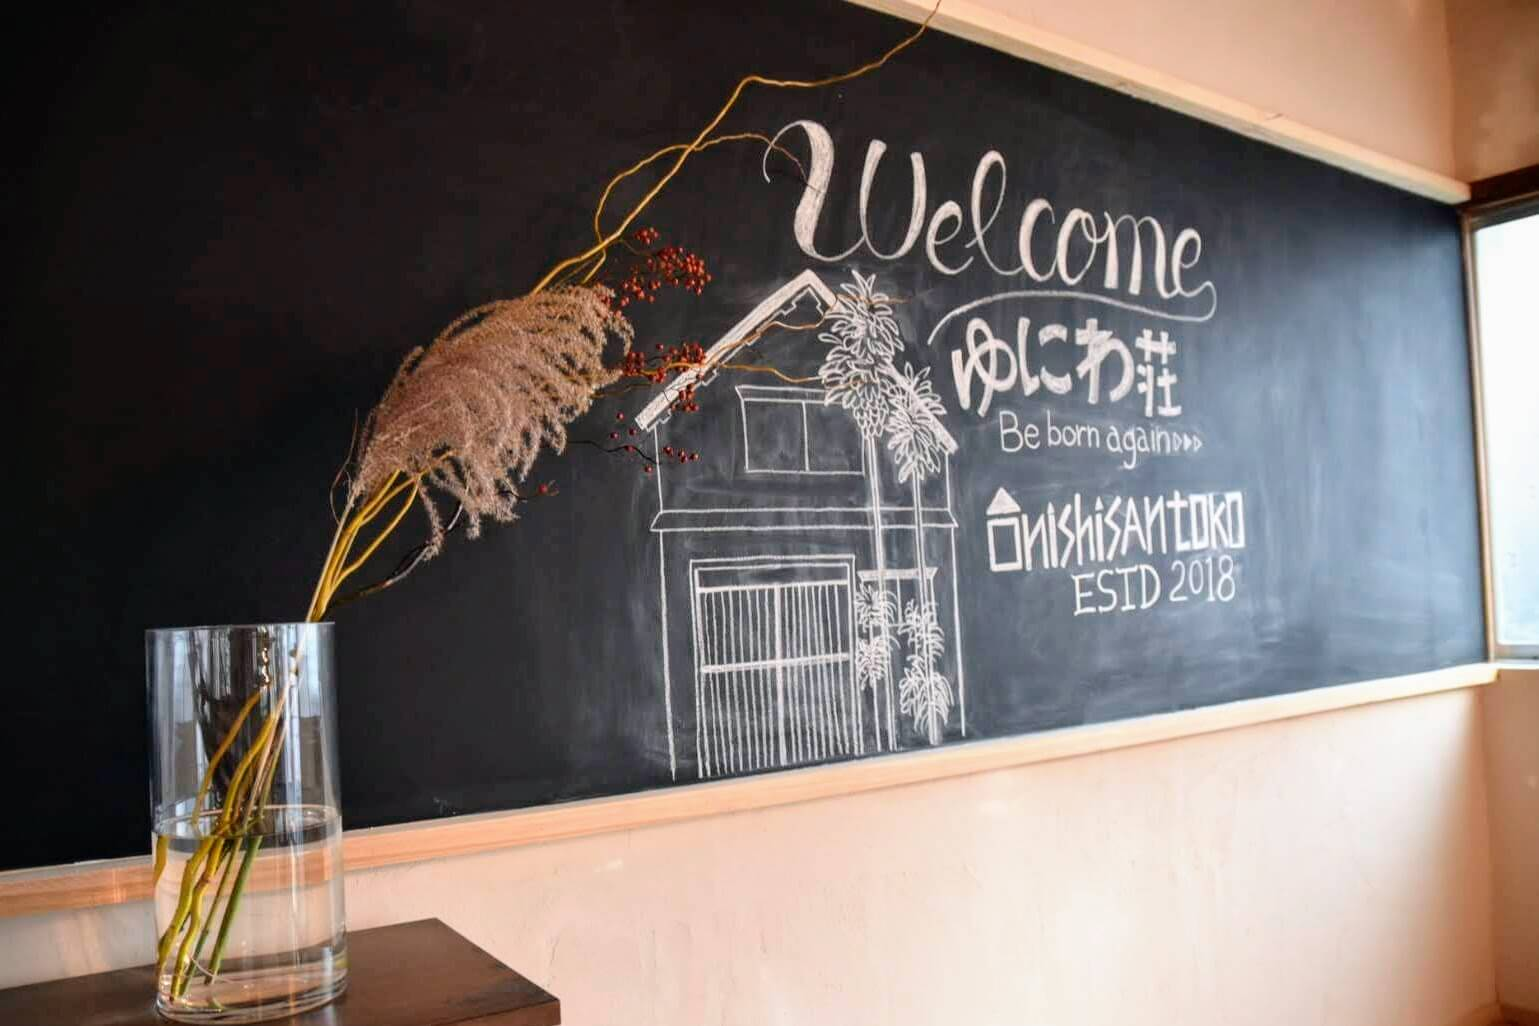 Welcome ゆにわ荘 Be born again Onishisantoko ESTD2018